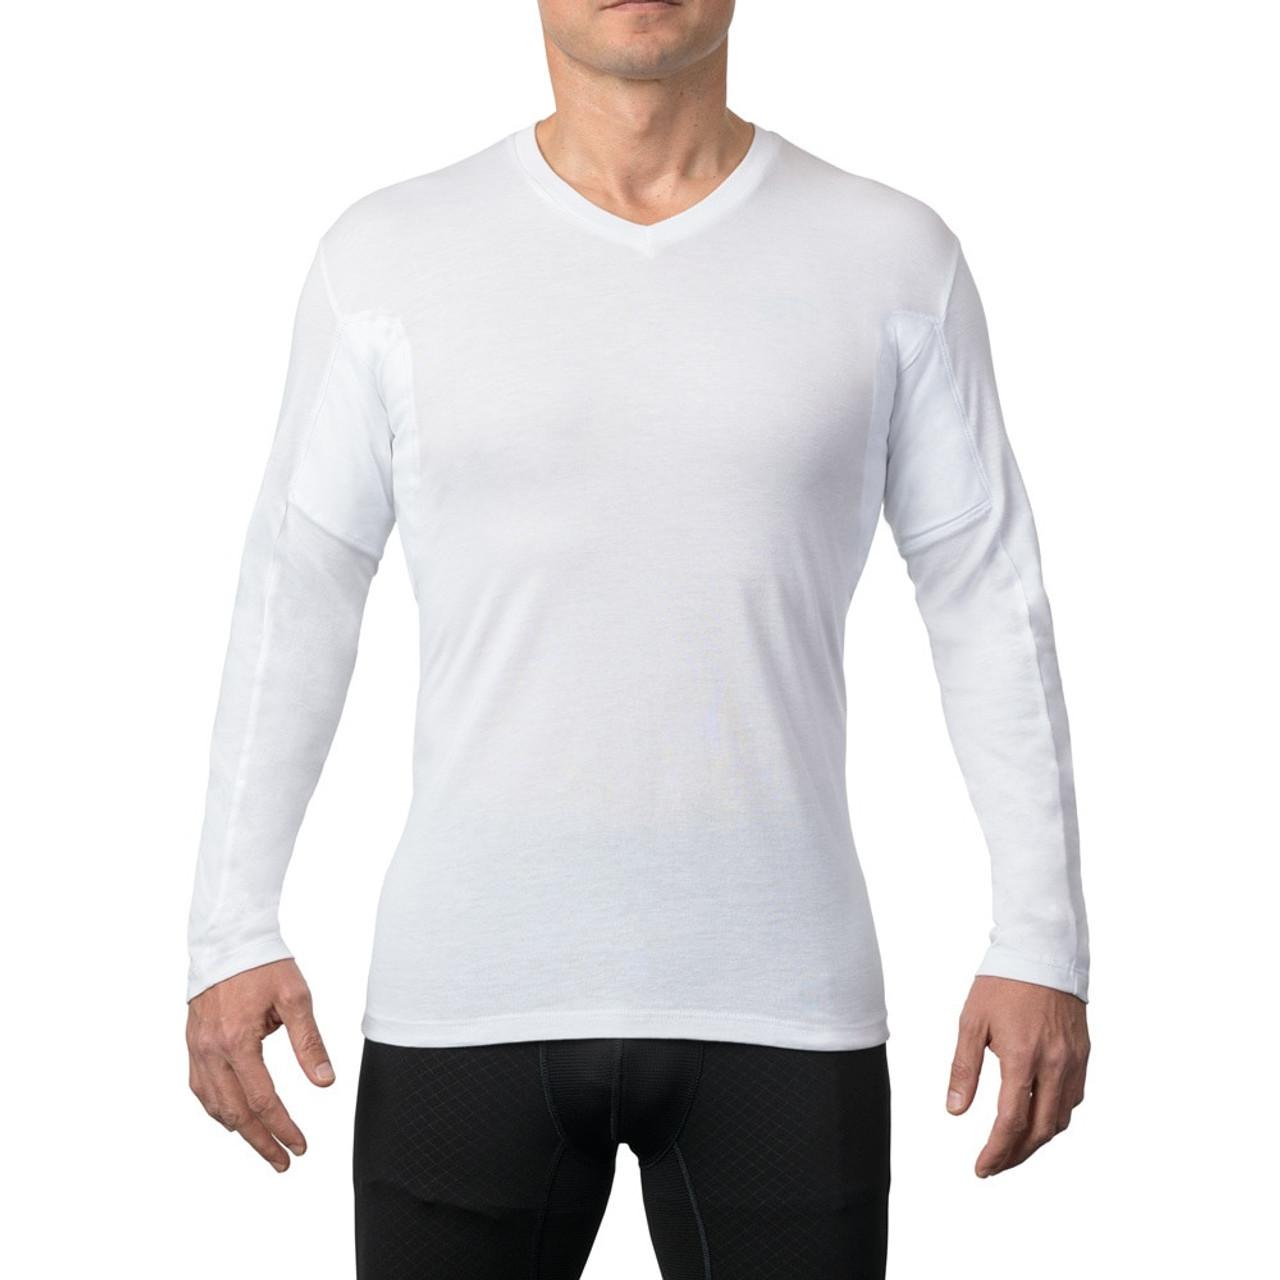 The Thompson Tee Mens Sweat Proof Undershirts for Men with Underarm Sweat Pads Original Fit, V-Neck